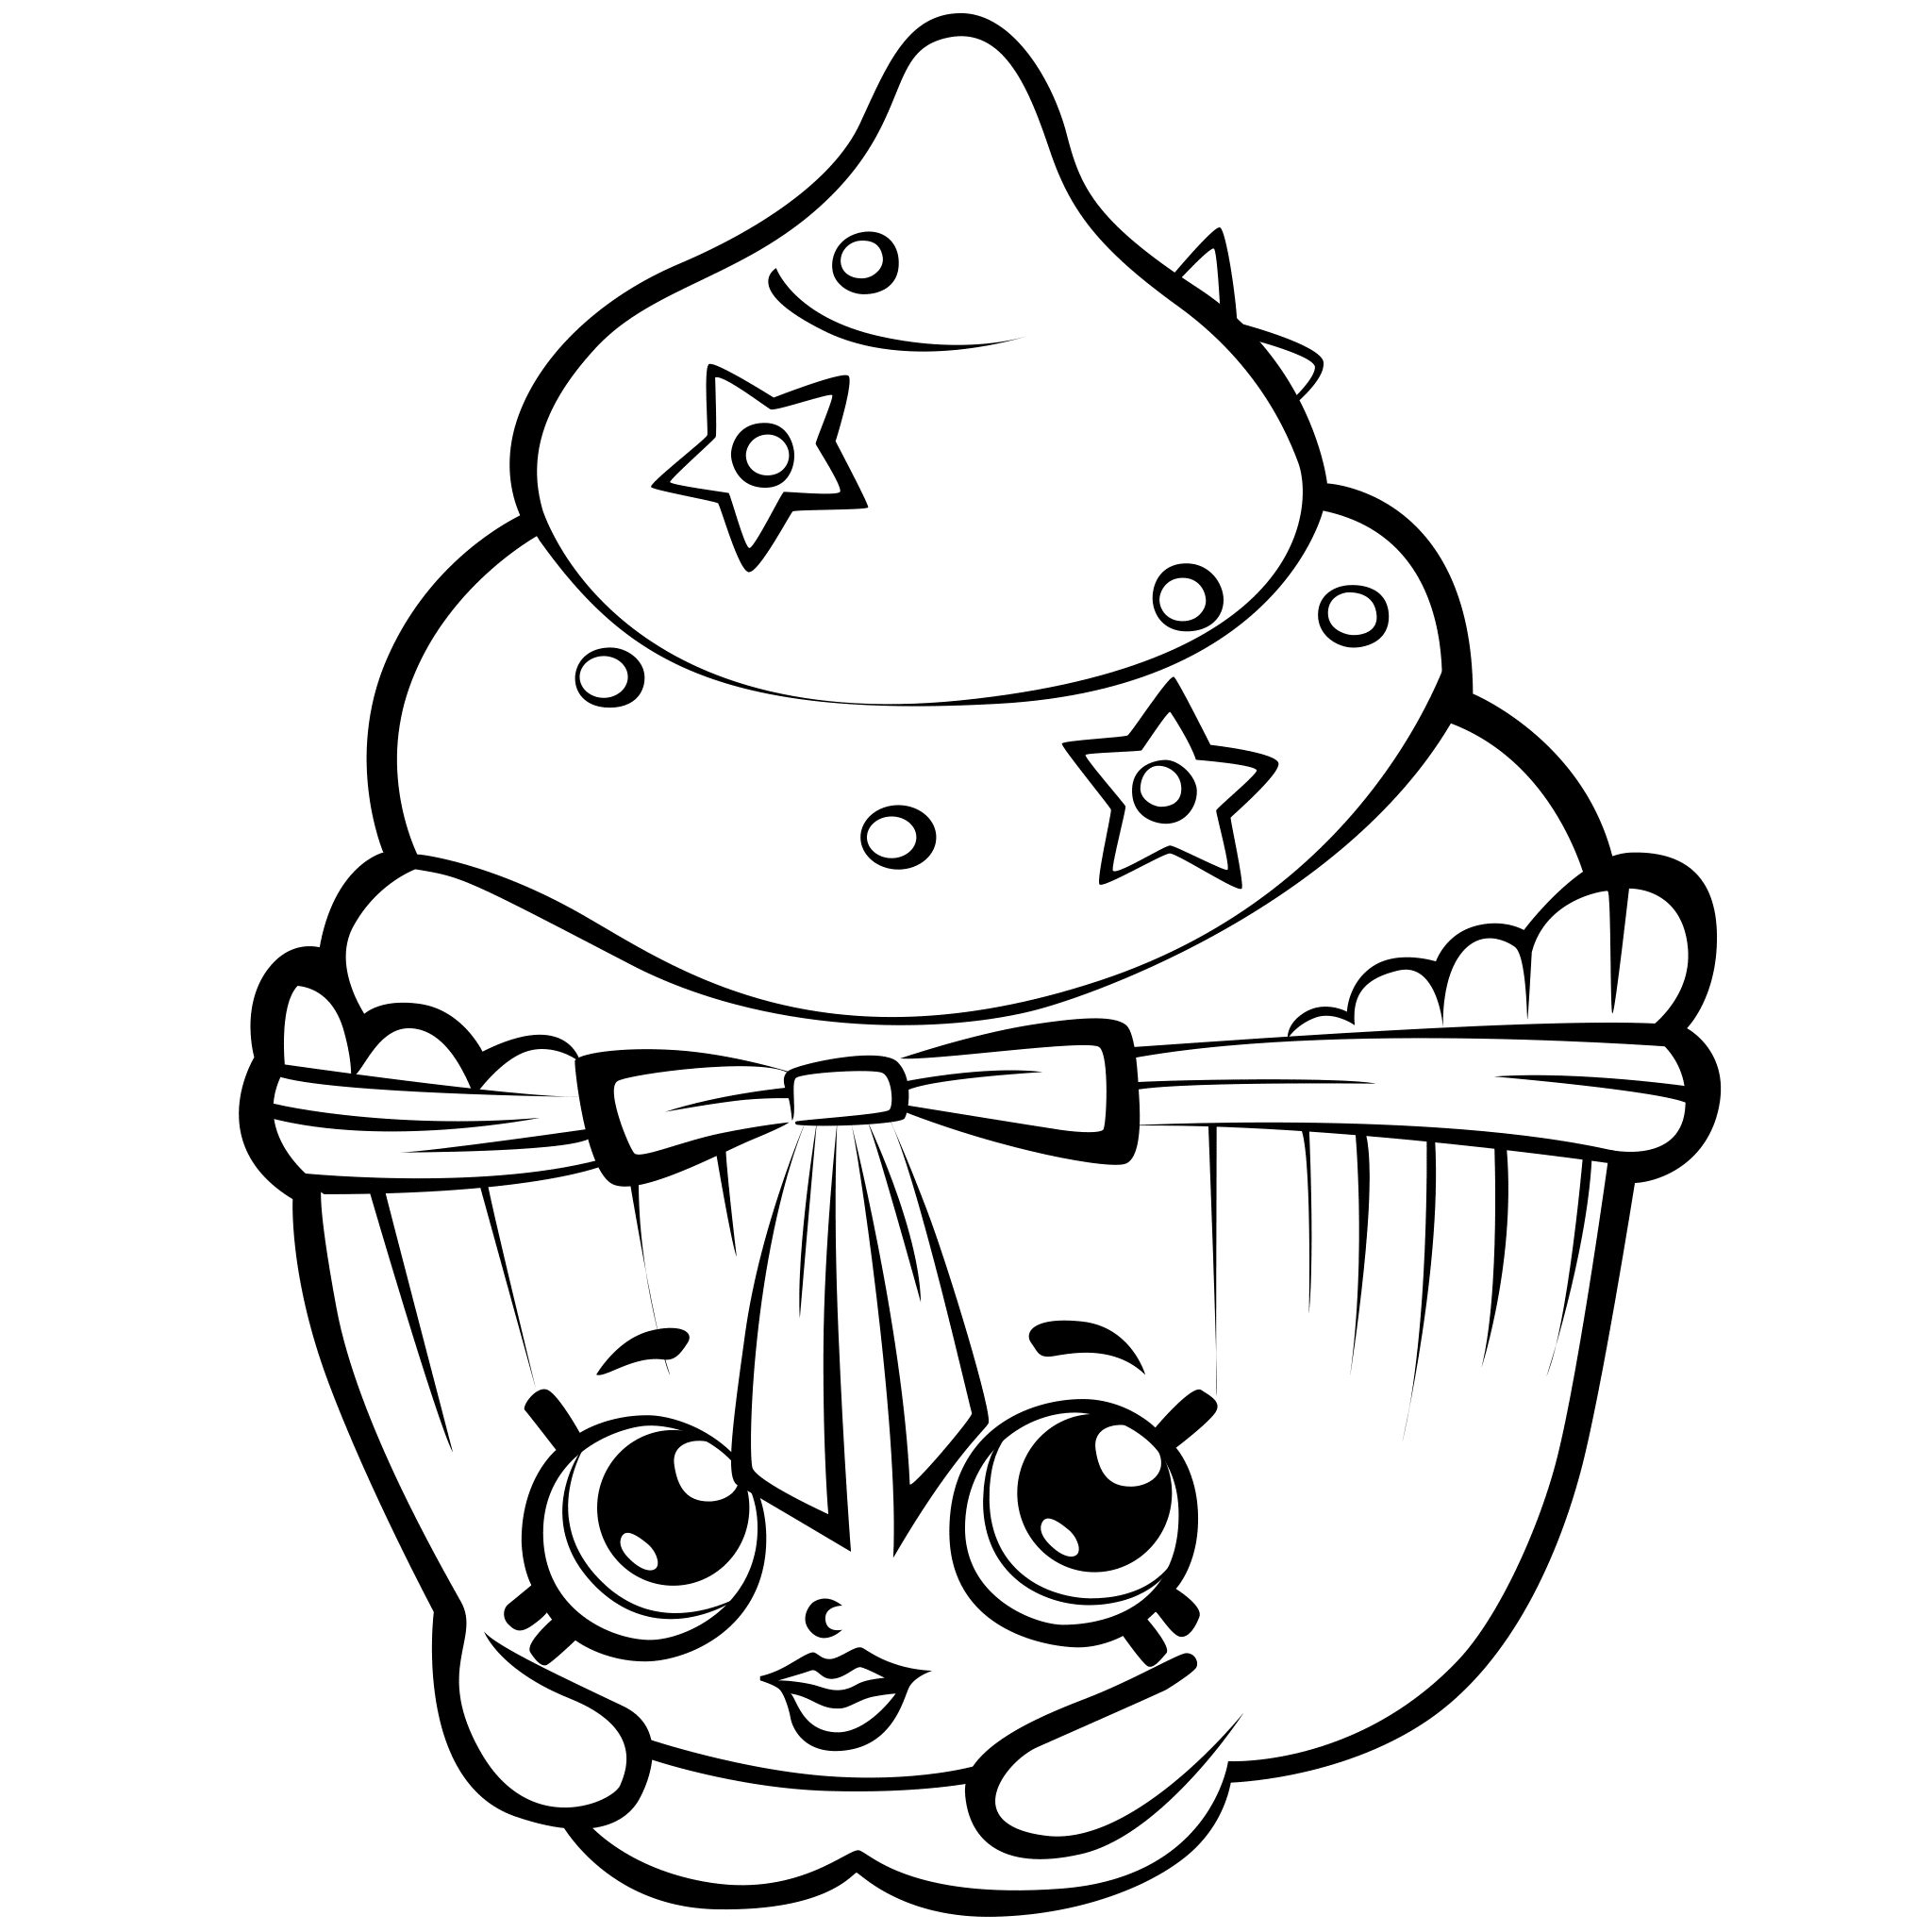 Shopkins Coloring Pages Best Coloring Pages for Kids Printable Of 40 Printable Shopkins Coloring Pages Gallery